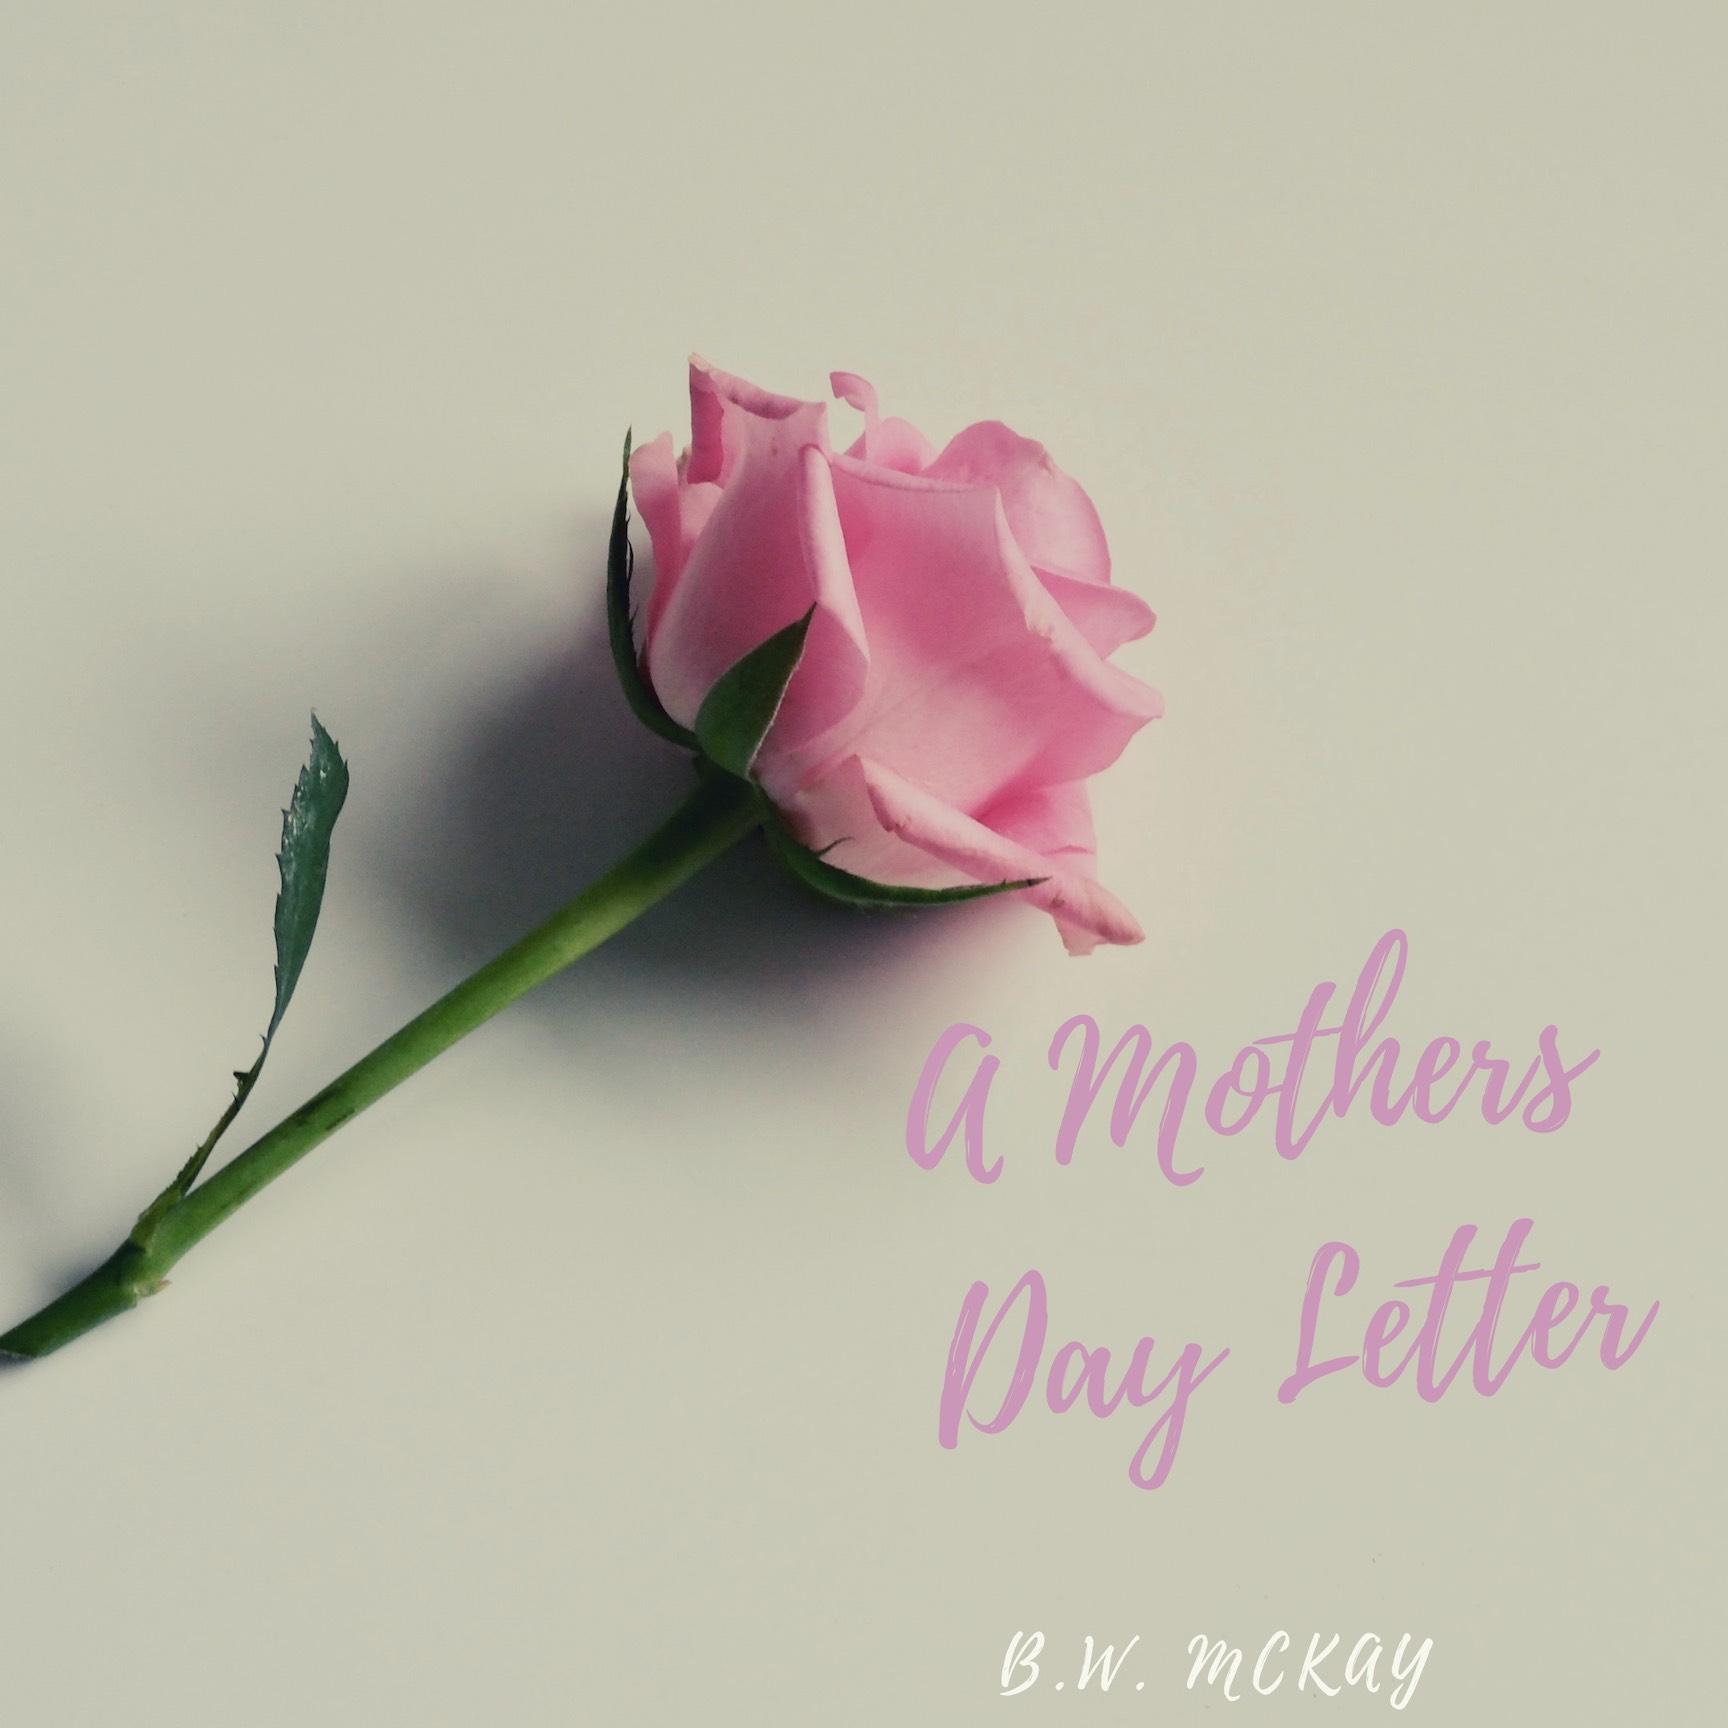 A Mothers Day Letter.jpeg